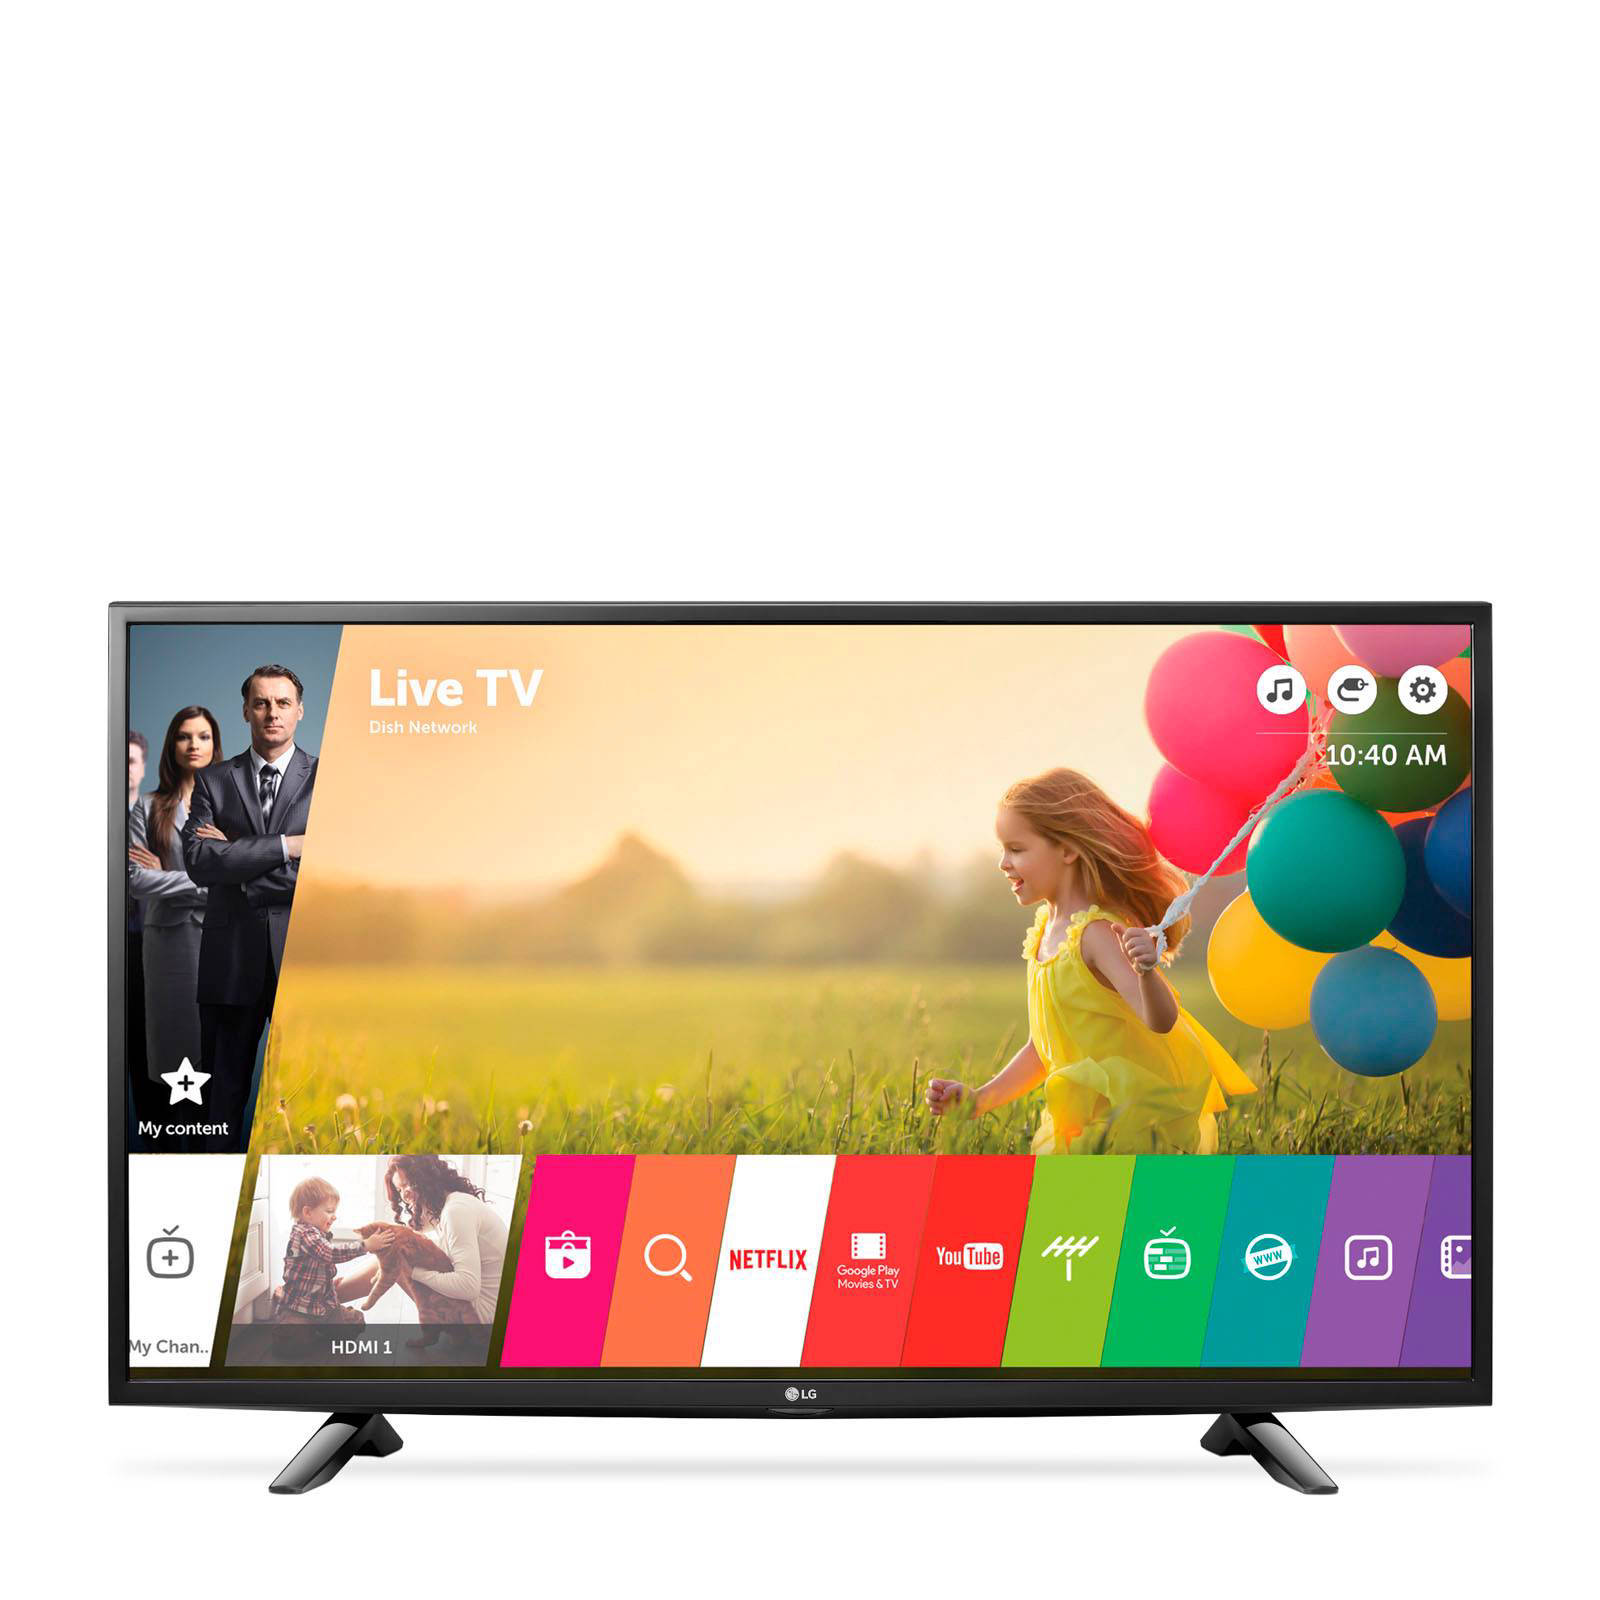 Kijkhoek Tv Slaapkamer 65uj630v 4k Ultra Hd Smart Led Tv